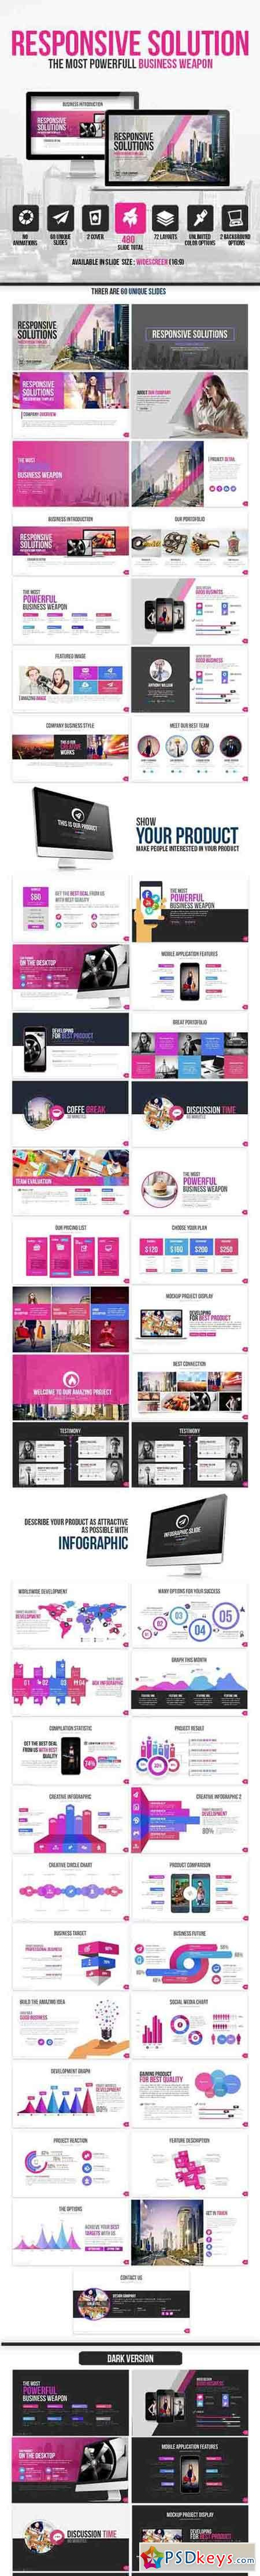 Responsive Solutions Presentation Template 11456537